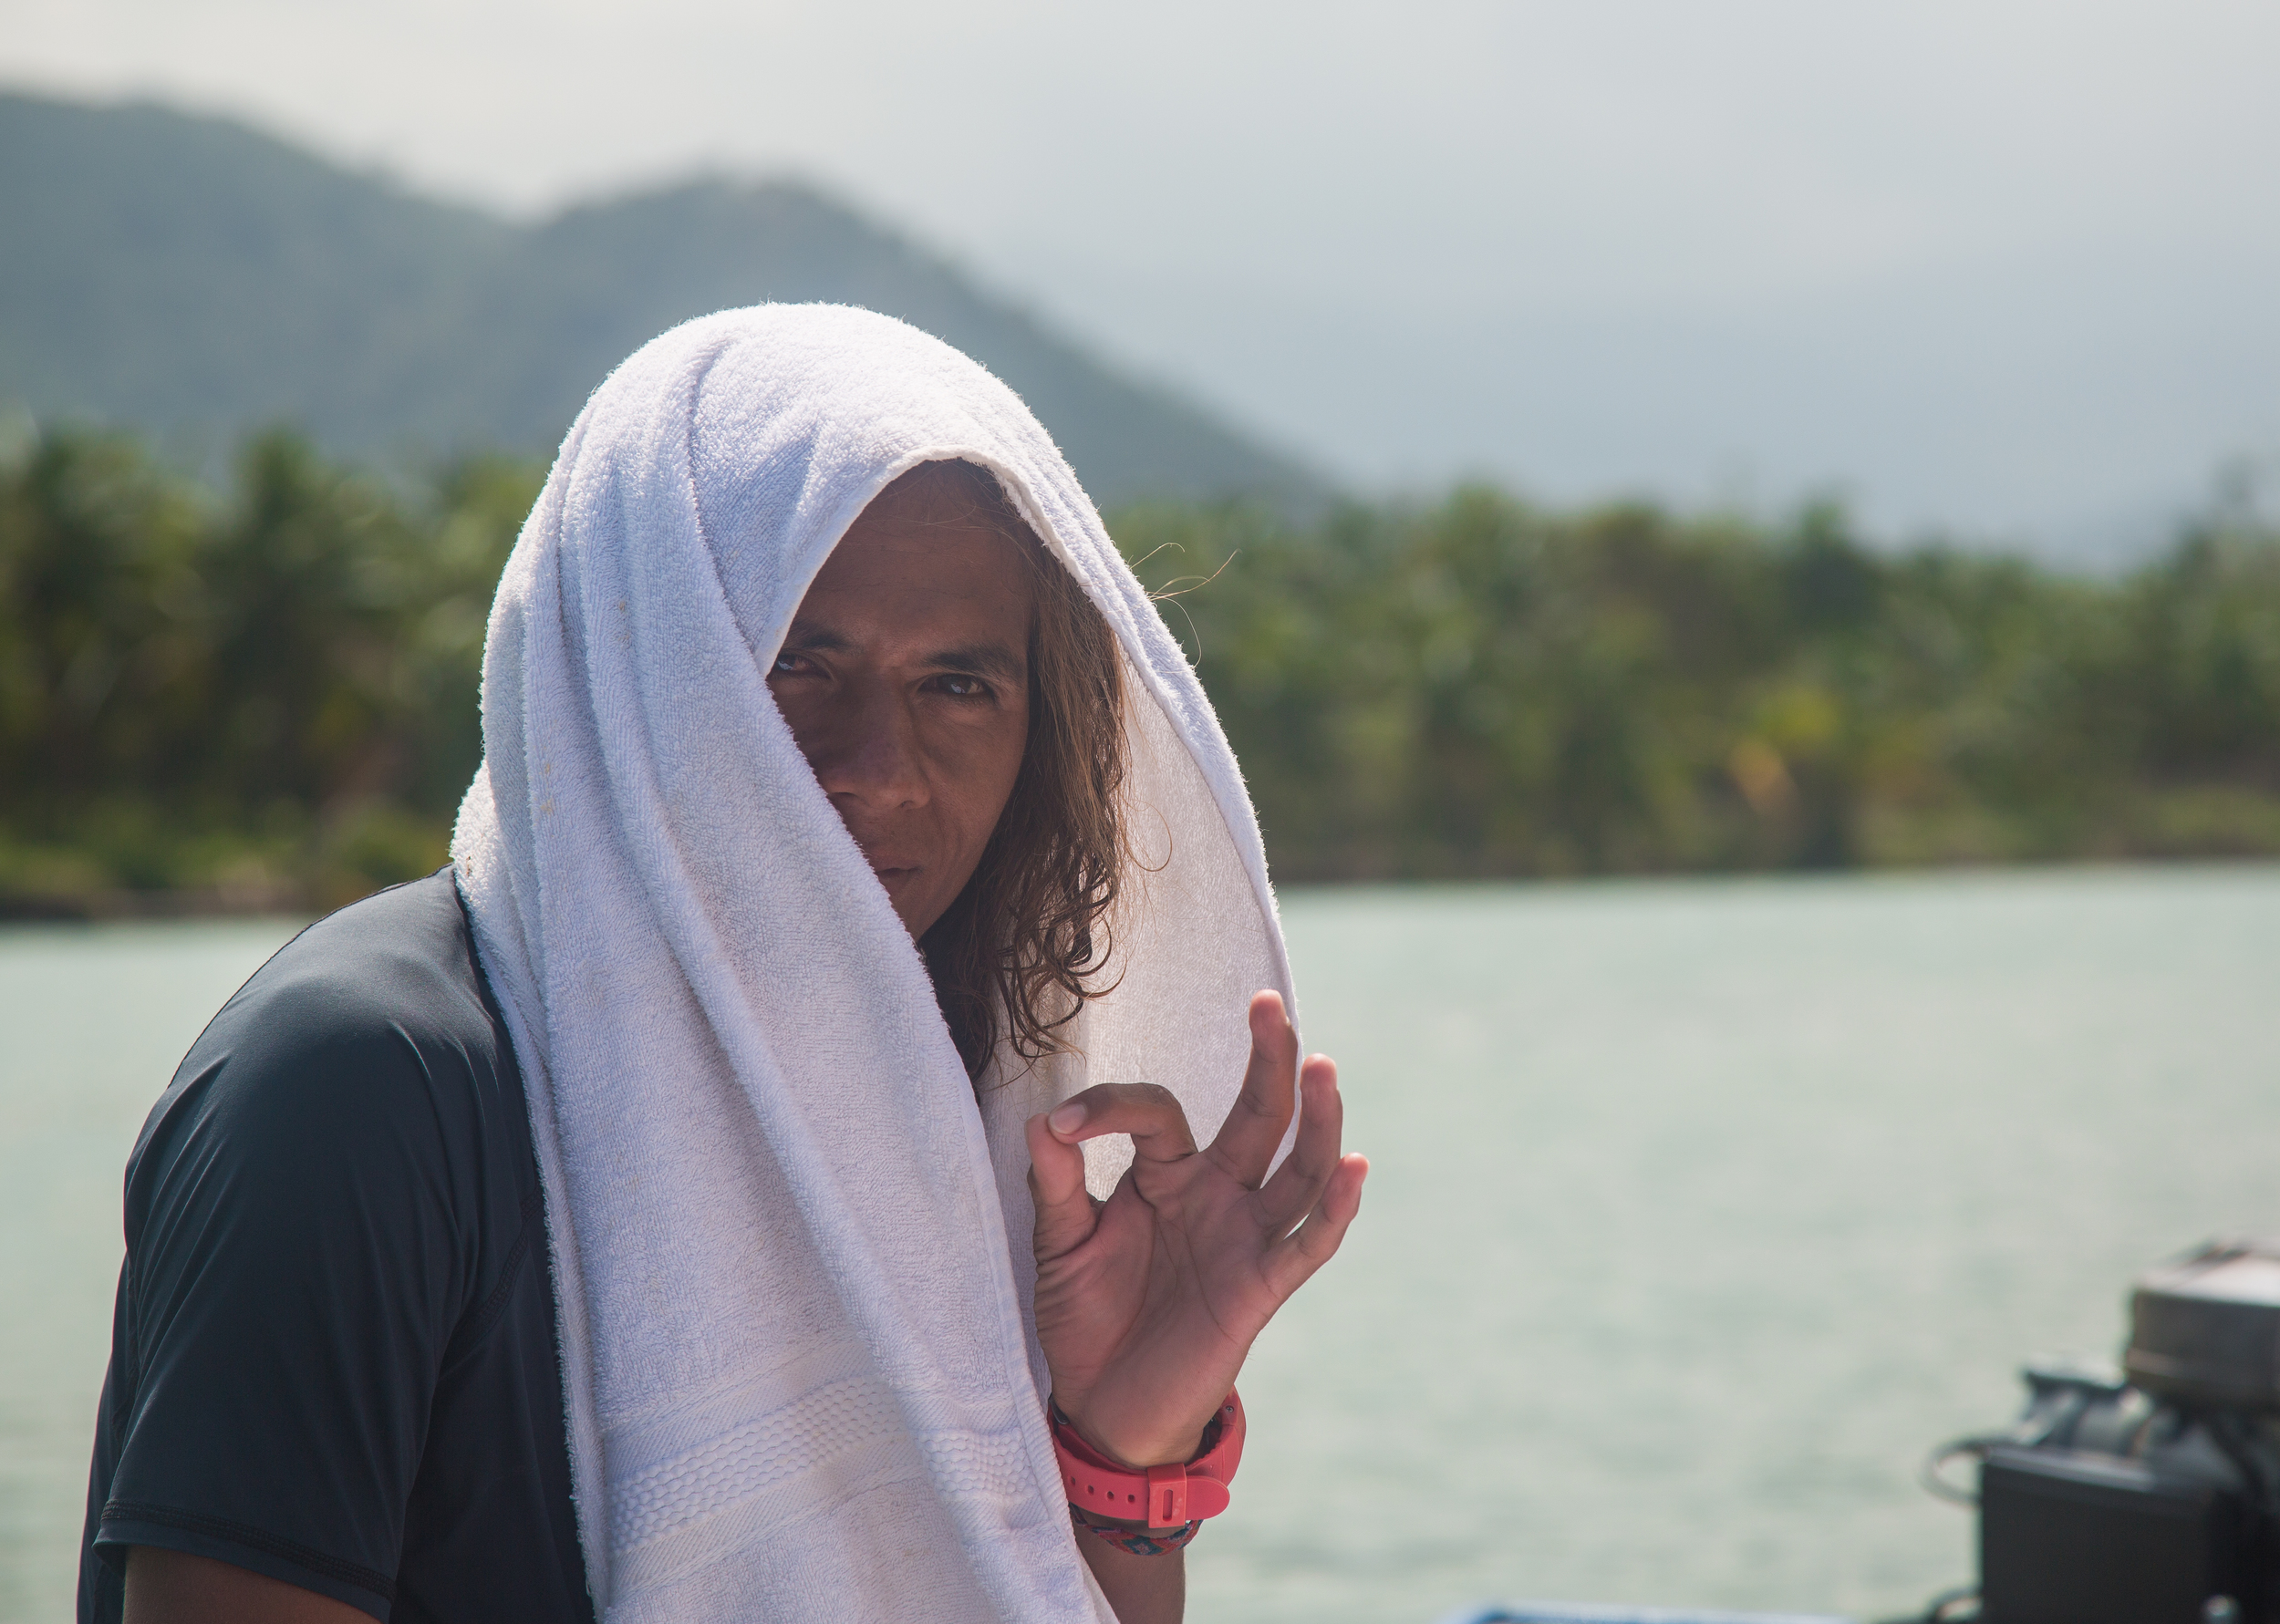 Our surf guide Mike. Took us all round Baler not just the surf spots. Legend.